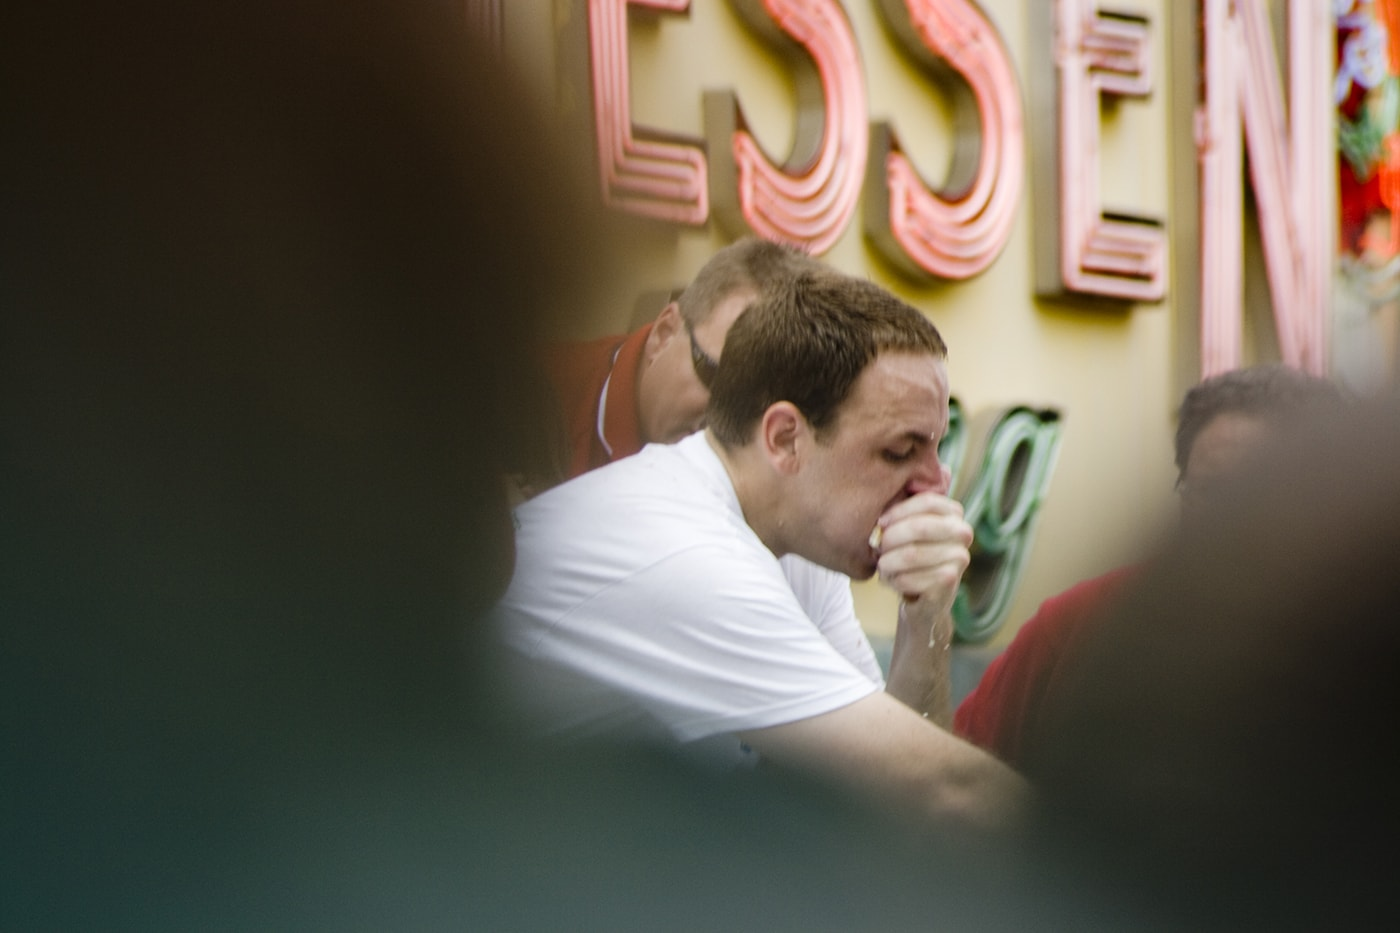 Joey Chestnut eats five hot dogs in overtime at the 2008 Nathan's Famous Fourth of July hot dog eating contest at Coney Island in New York.